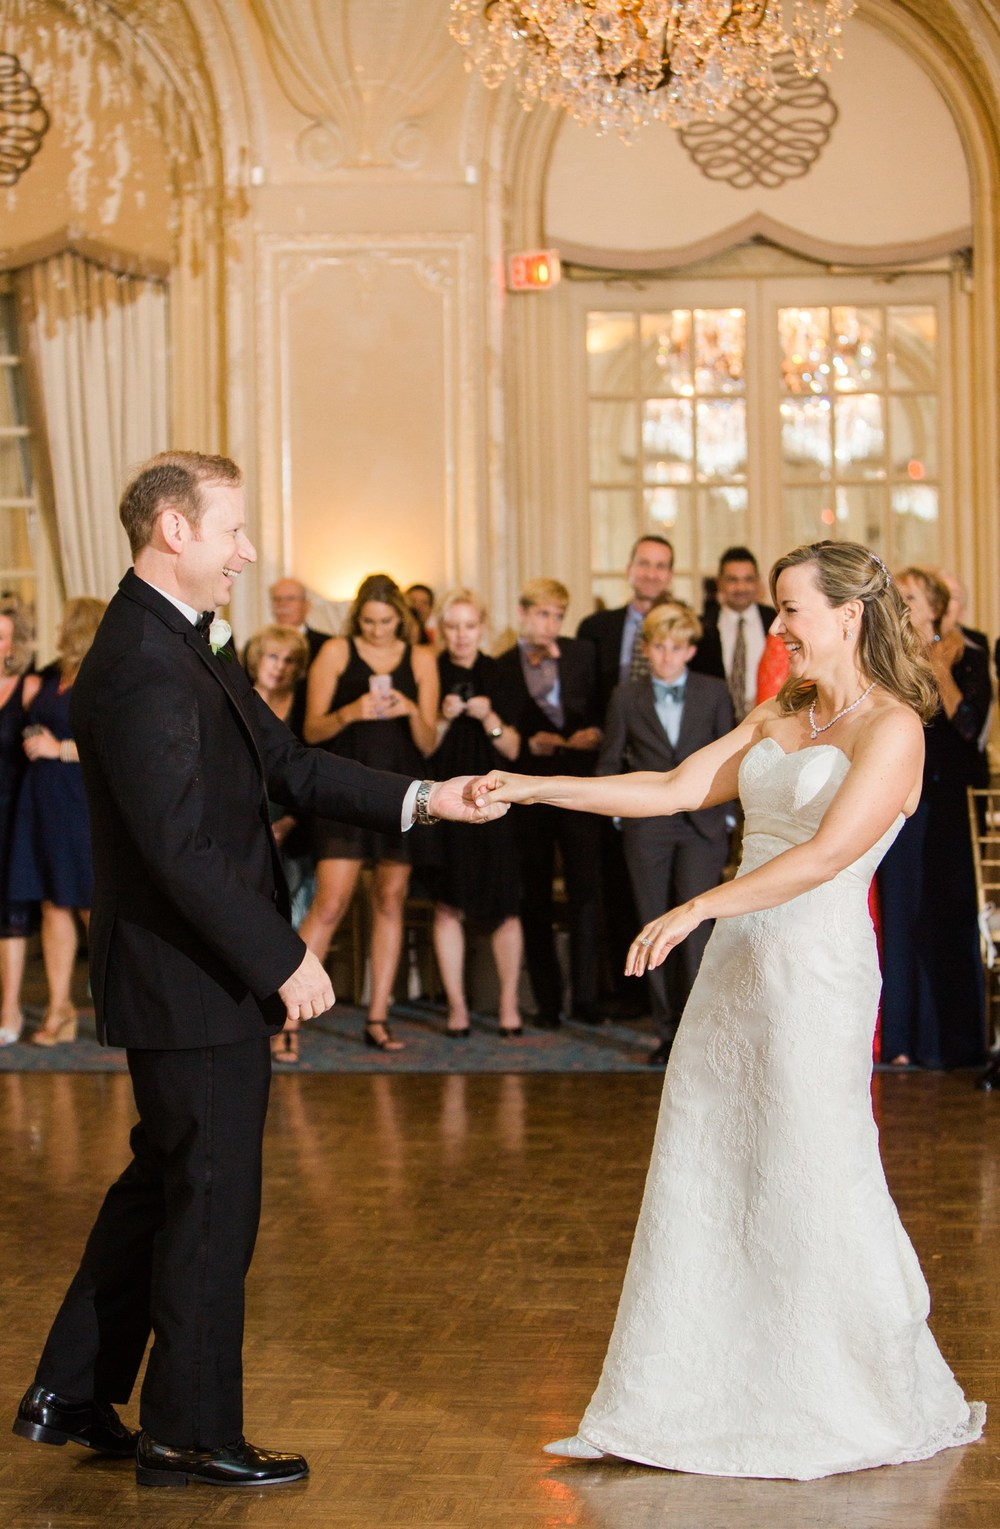 fairmont_copley_plaza_wedding_deborah_zoe_0053.JPG